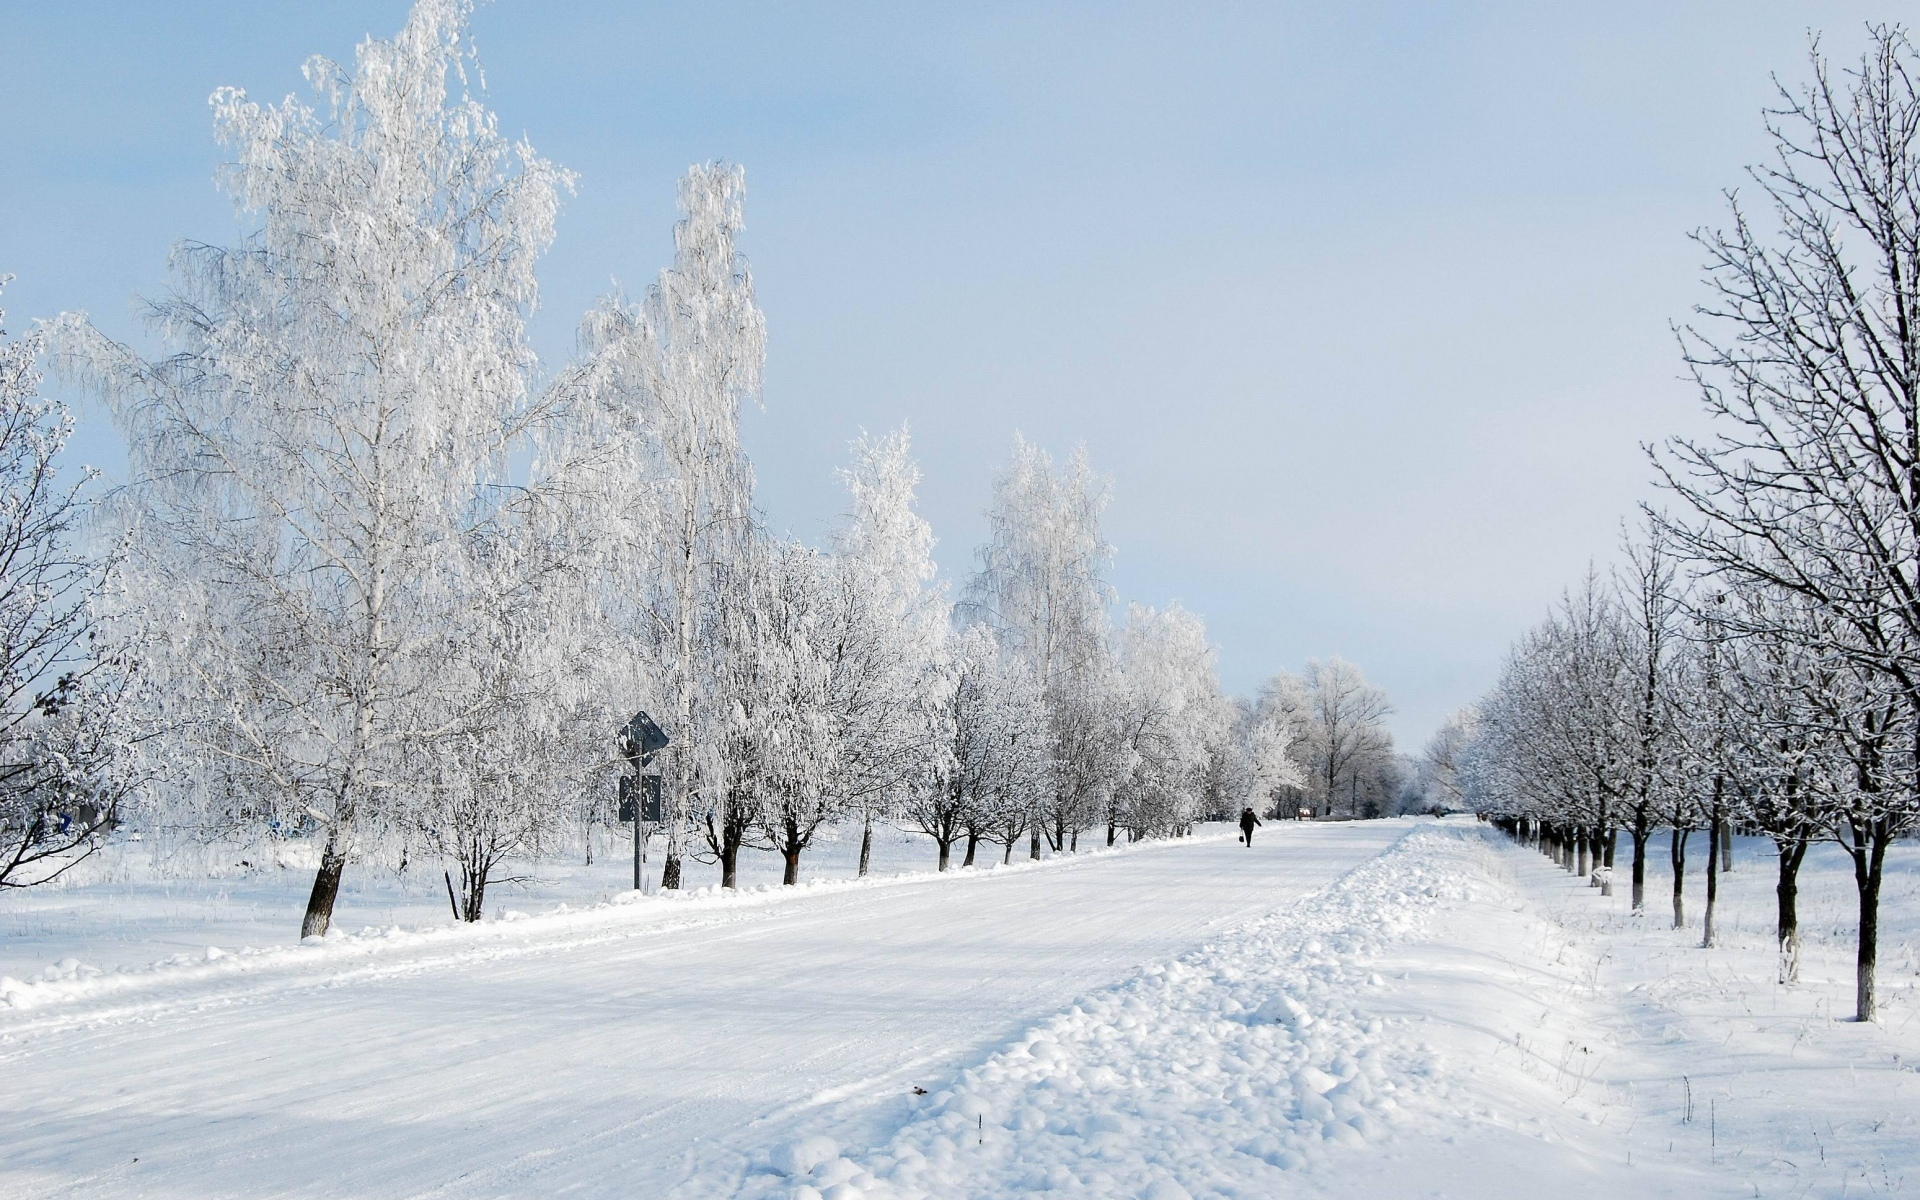 Live Snow Falling Wallpaper For Desktop Long Winter Road Amp Trees Wallpapers Long Winter Road